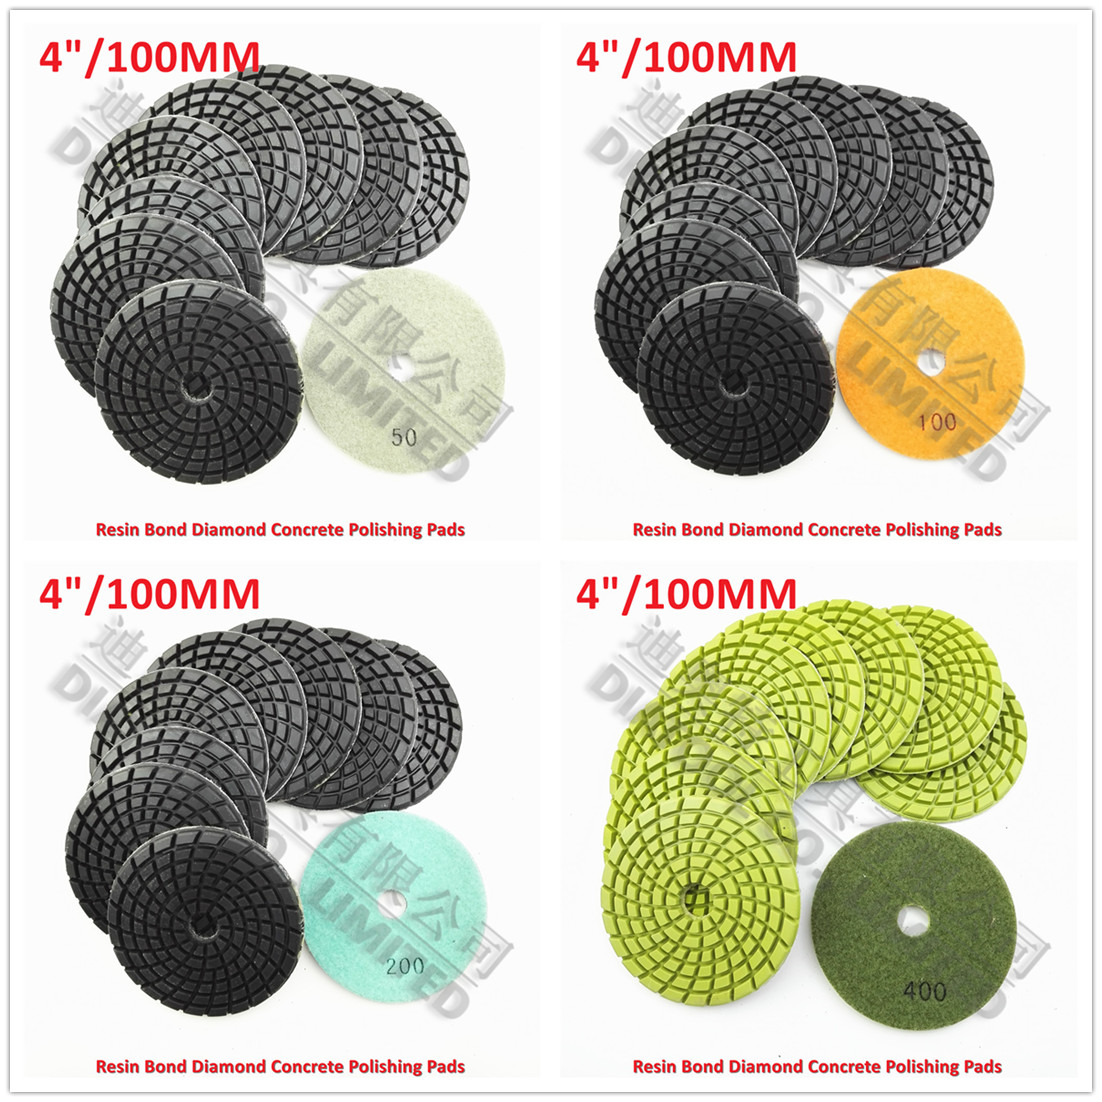 DIATOOL 9pcs Dia 100mm Diamond Resin Bond Concrete Polishing Pads Repairing For Beton Dia 4inch Floor Renew Sanding Discs